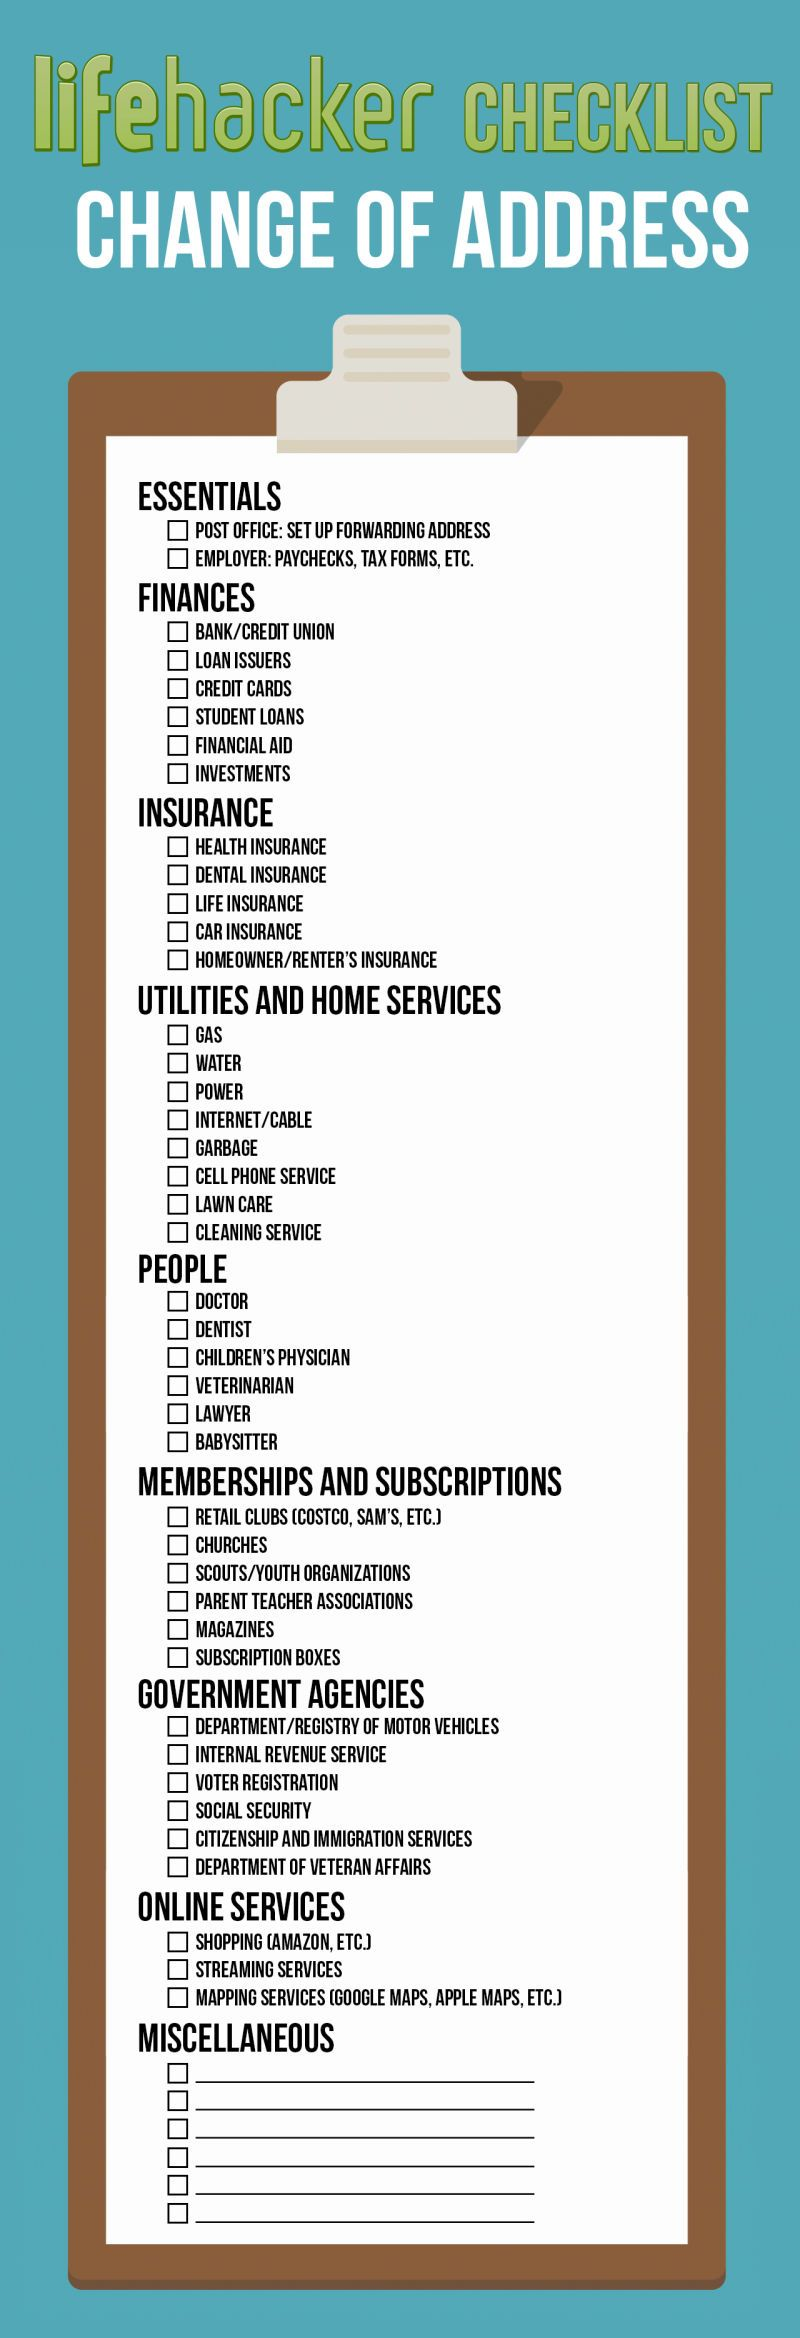 Change Your Address Everywhere On This Printable Checklist When You Move Moving Tips Moving Help Moving Home